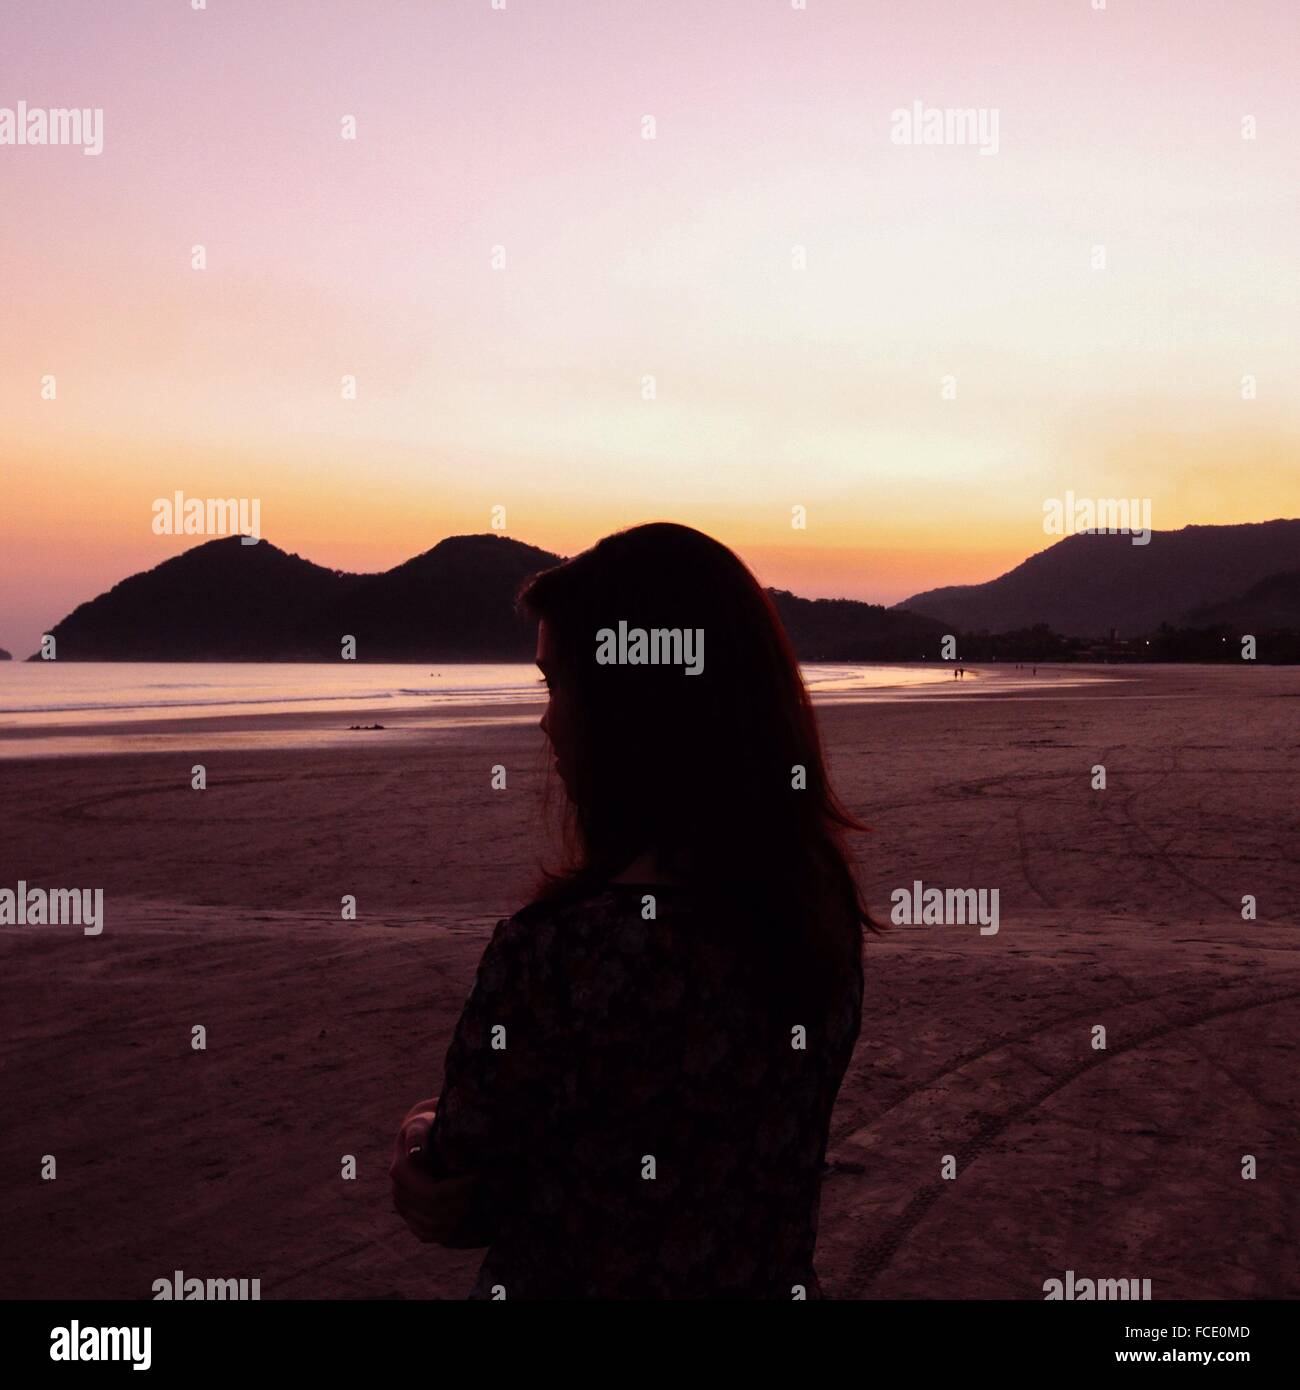 Silhouette Of Woman On Beach - Stock Image